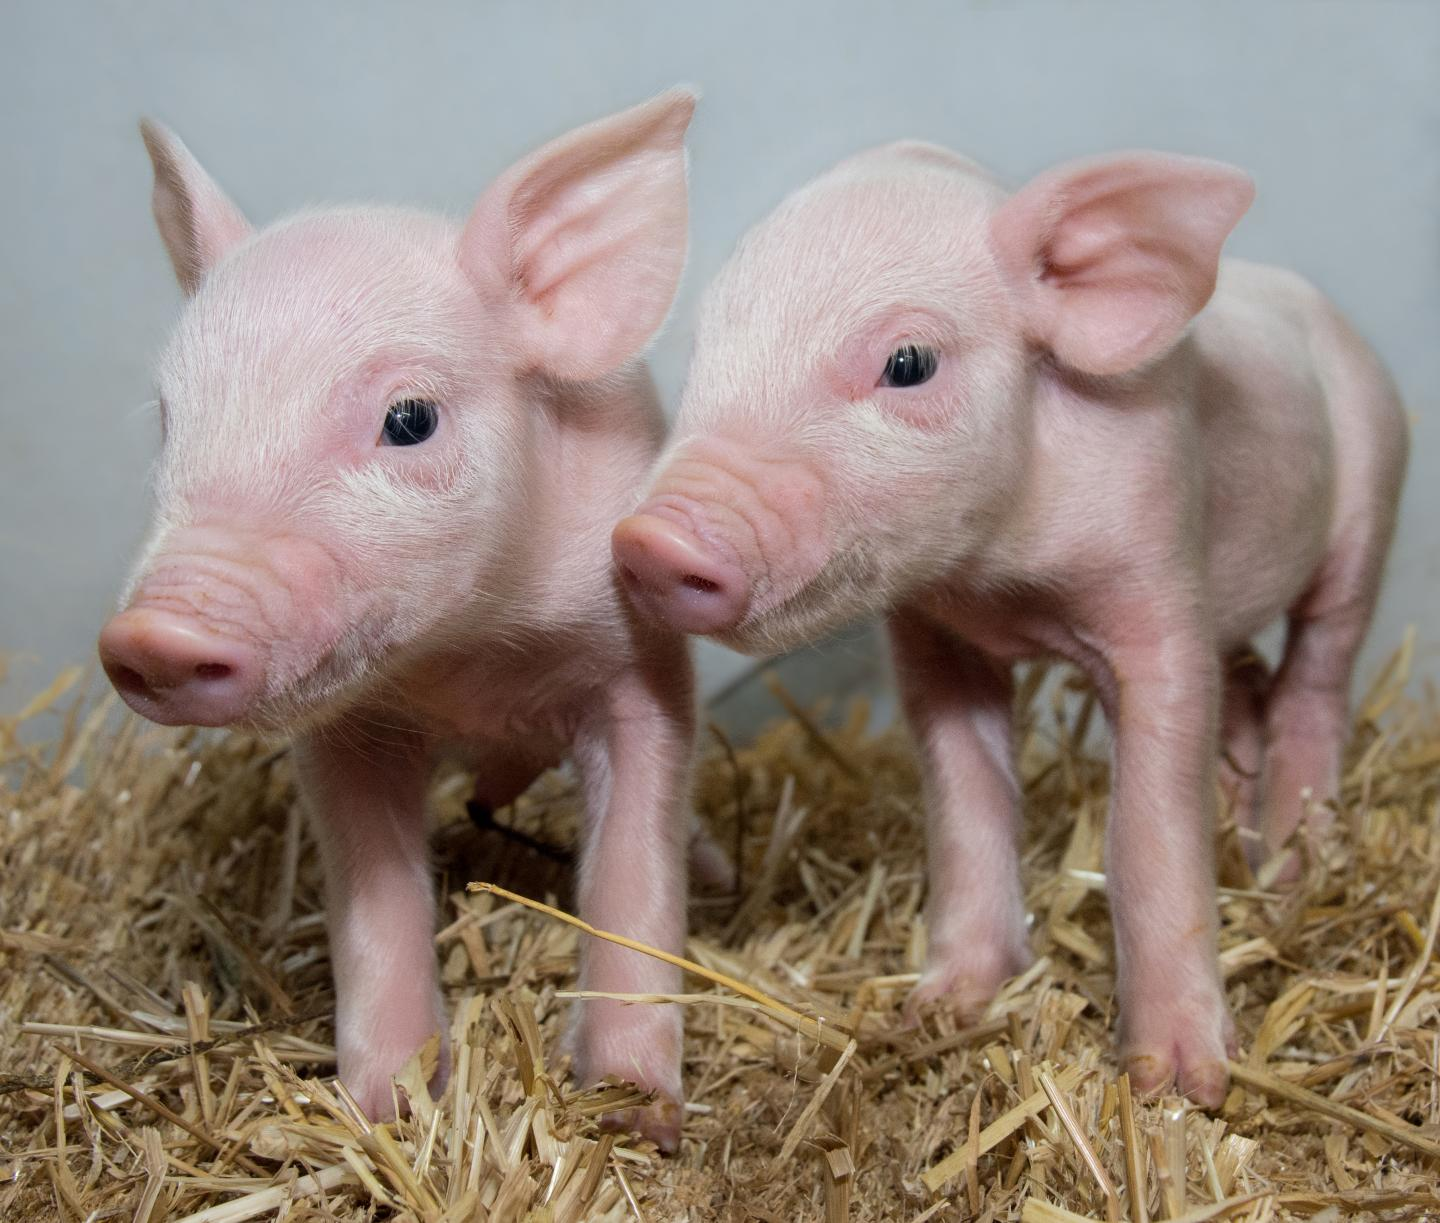 Scientists have produced pigs that may be protected from an infection that costs the swine industry billions each year. The University of Edinburgh team have used advanced genetic techniques to produce pigs that are potentially resistant to porcine reproductive and respiratory syndrome (PRRS). [Laura Dow/The Roslin Institute]